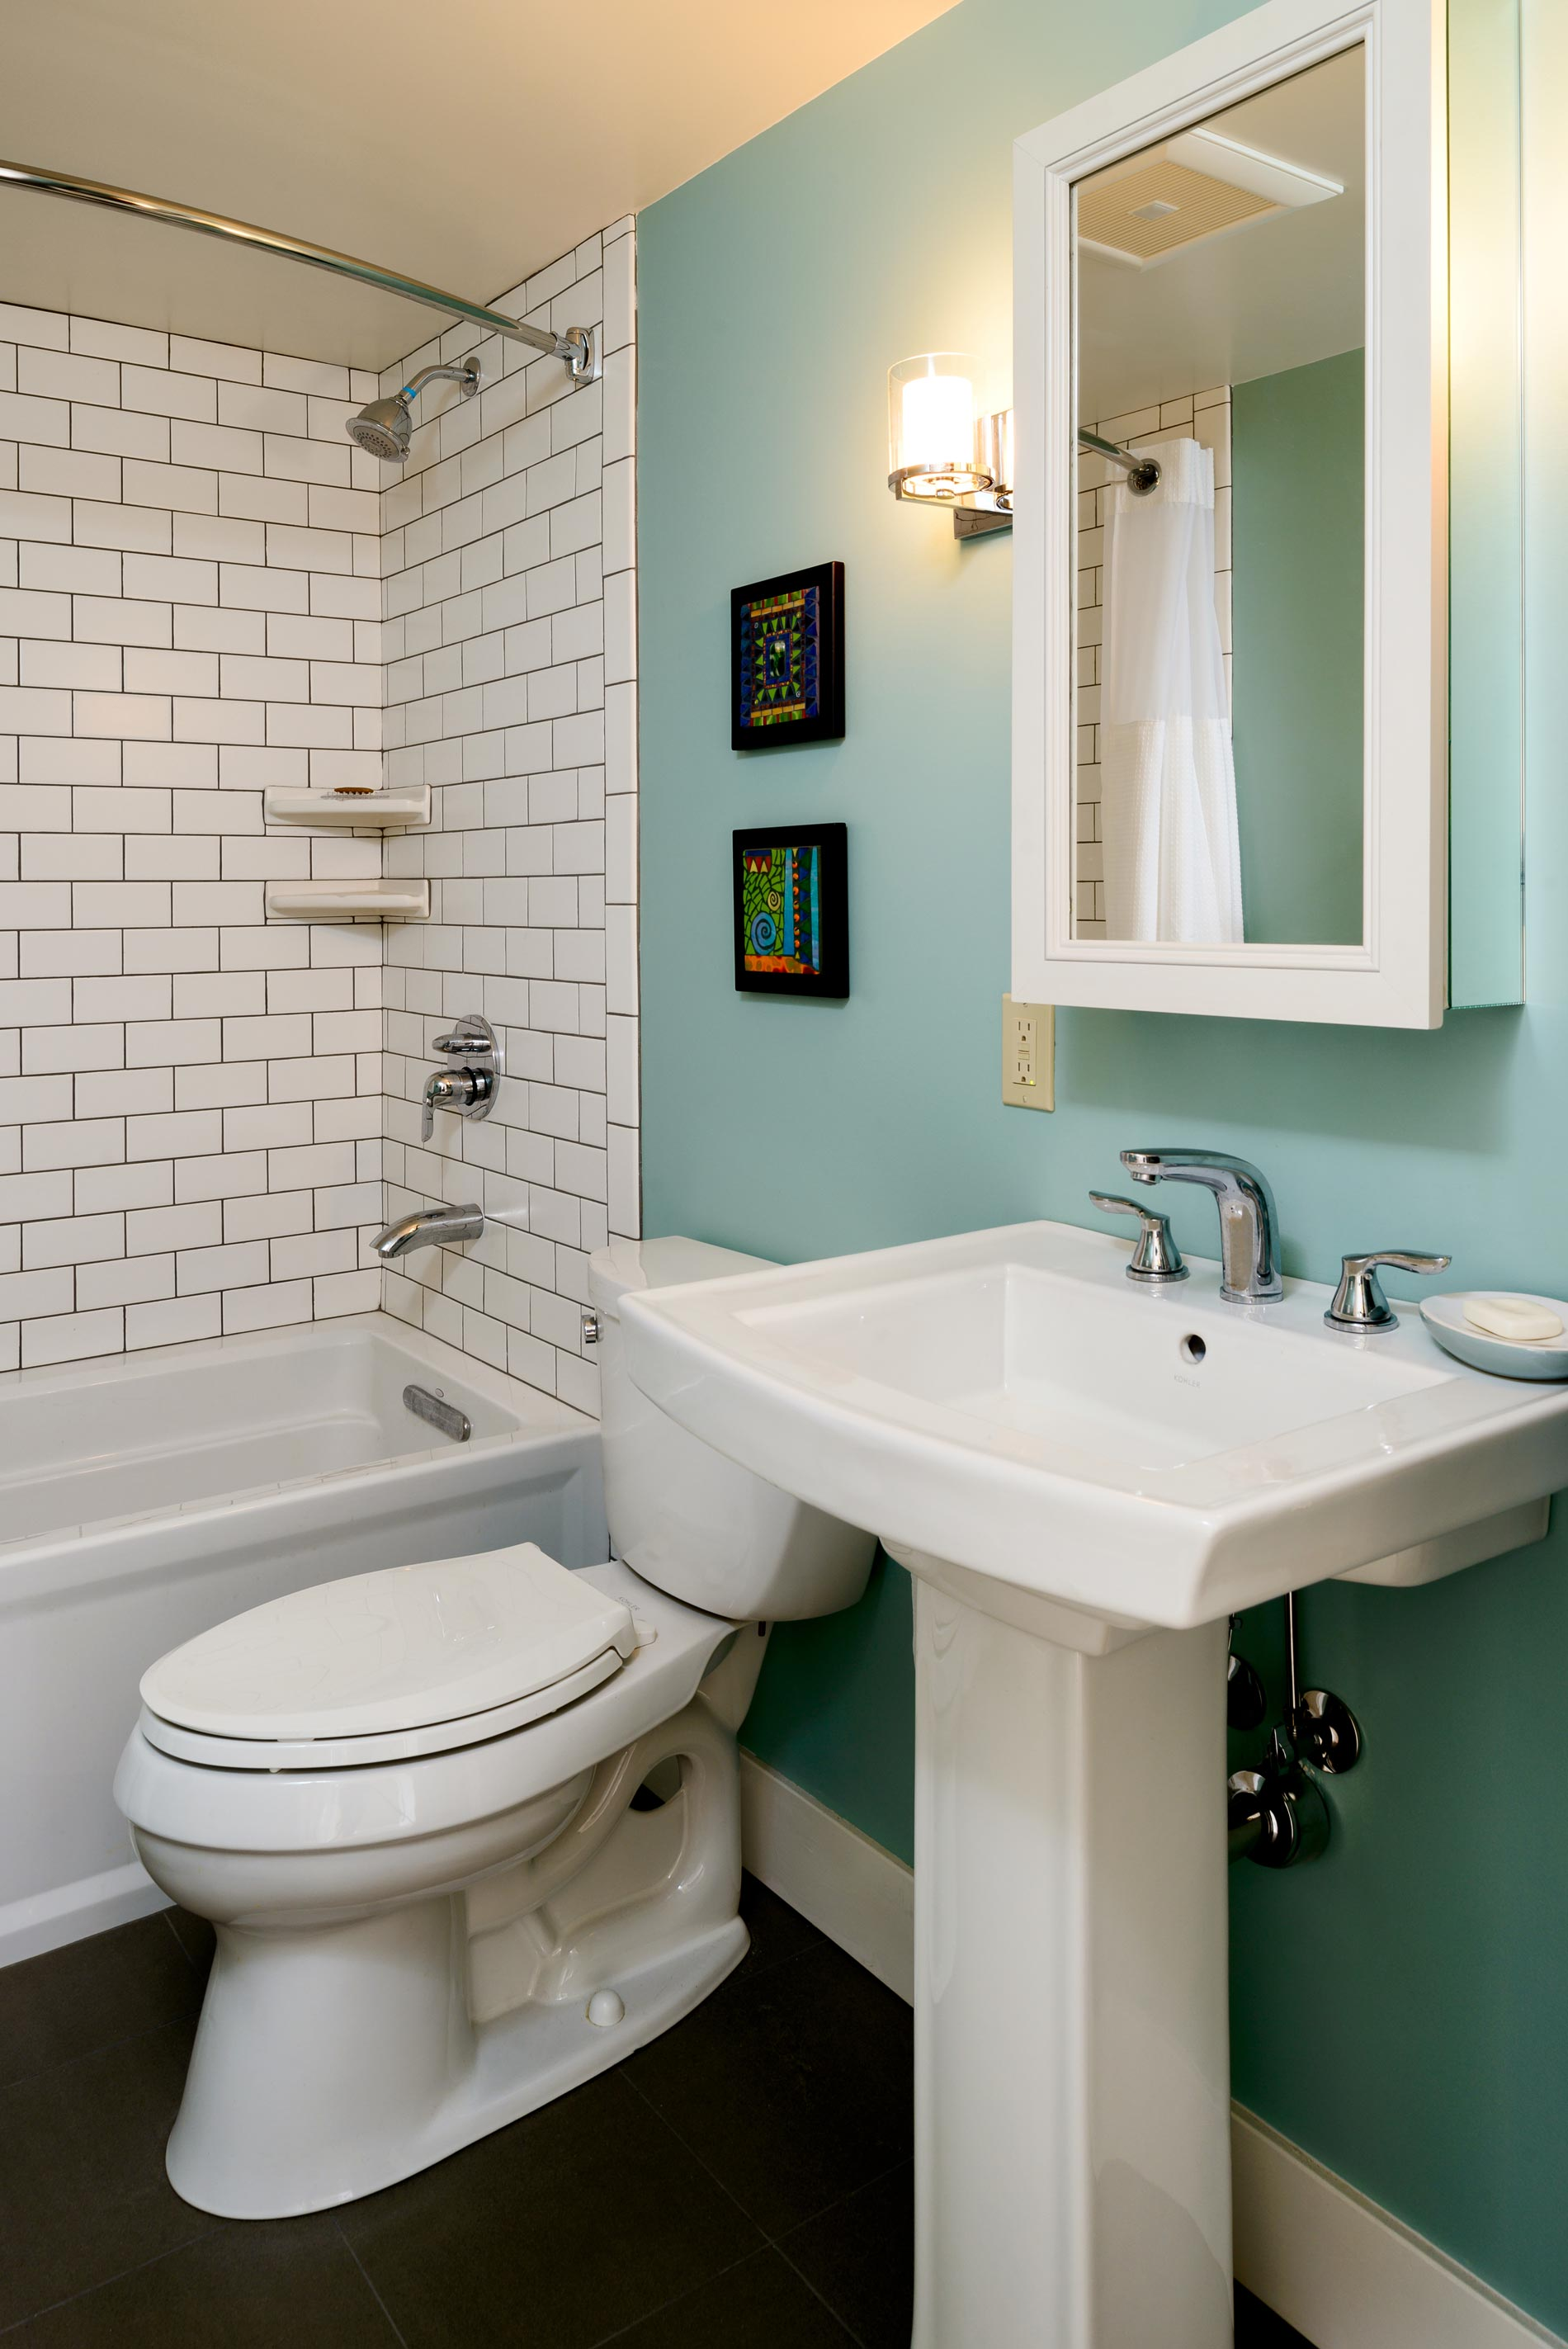 ne remodel repair bathroom contractors plus size of lincoln omaha nebraska with together full